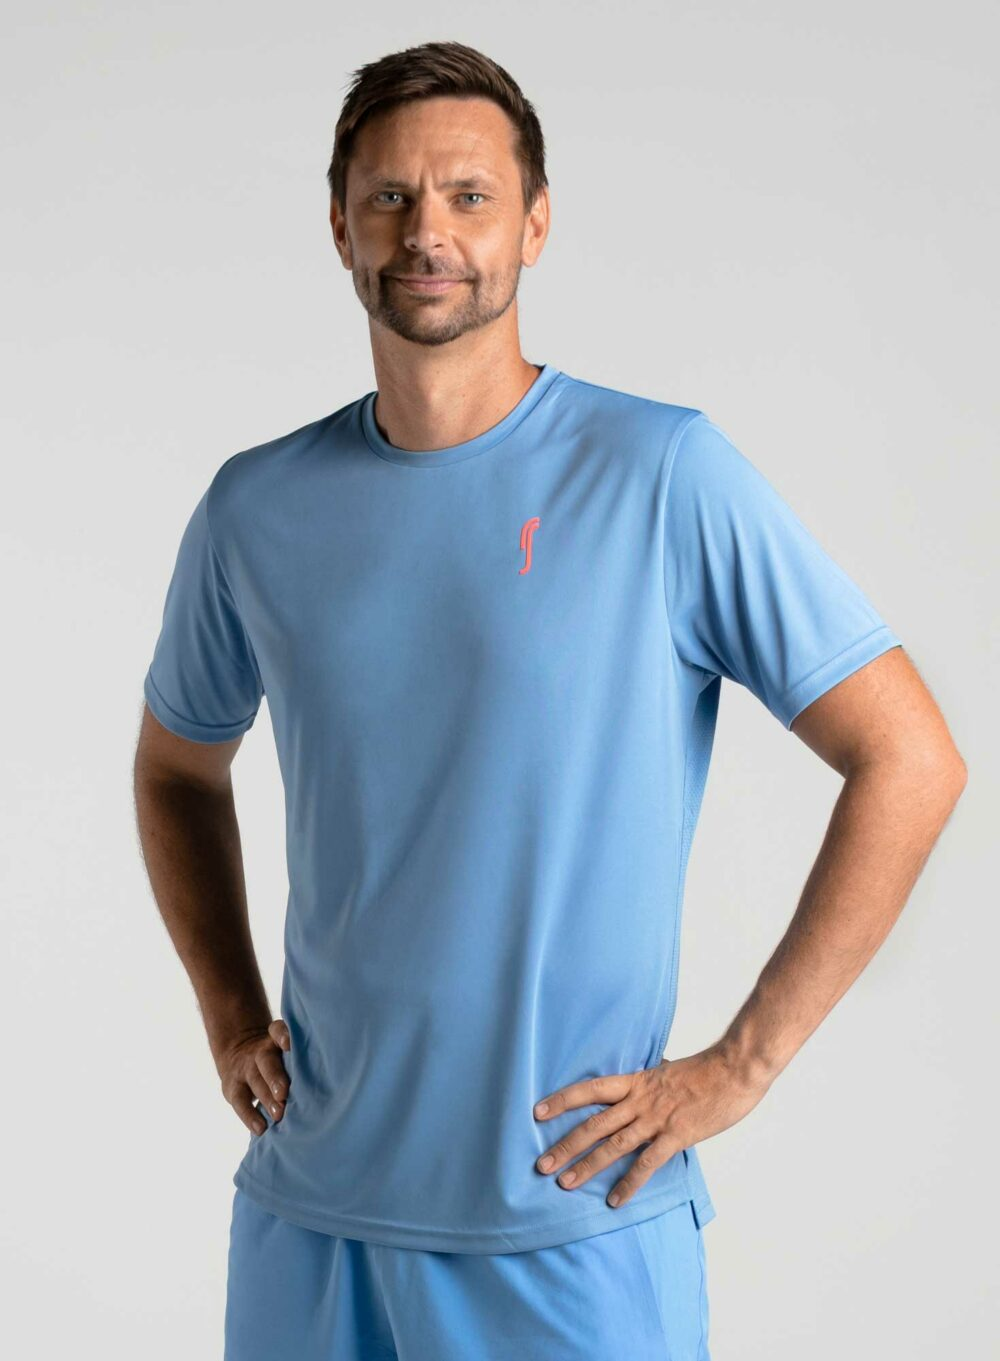 rs_performance_tee_strongblue_11